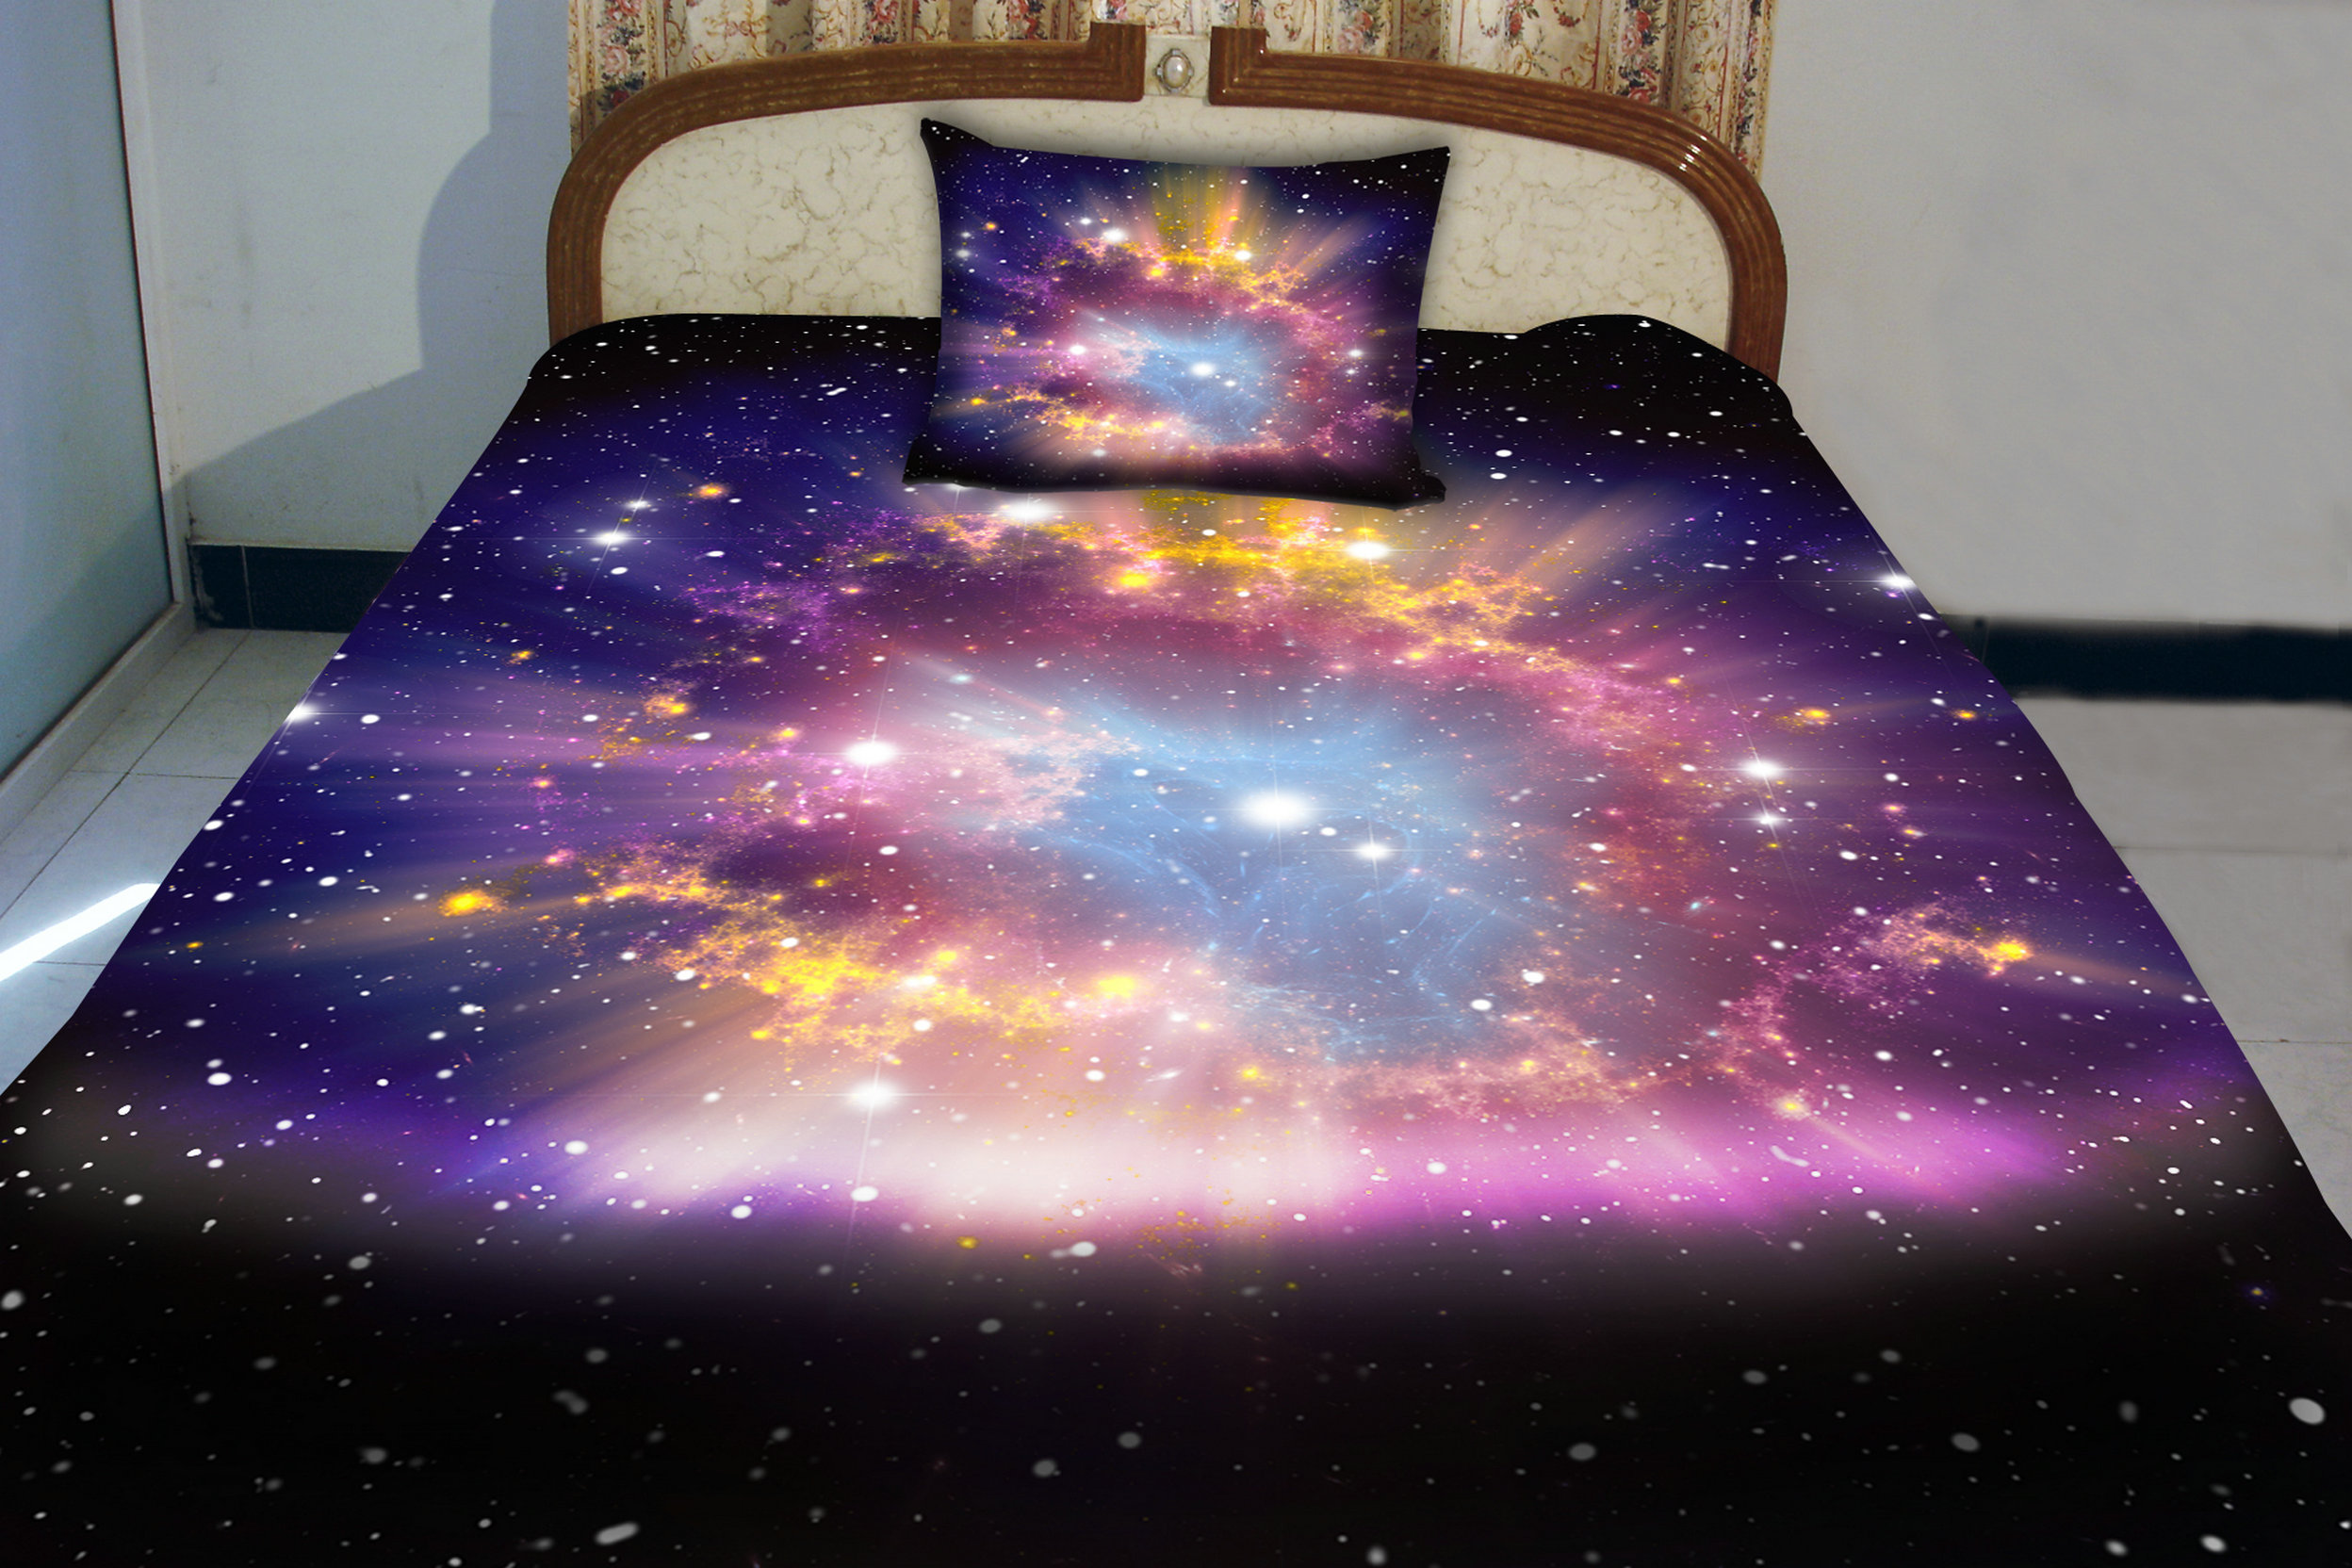 Anlye Dorm Bedding Of Diy Home Decor Set 2 Sides Printing Nebula Quilt Duvet Covers Nebula Bed Linen Sheets With 2 Matching Nebula Pillow Covers